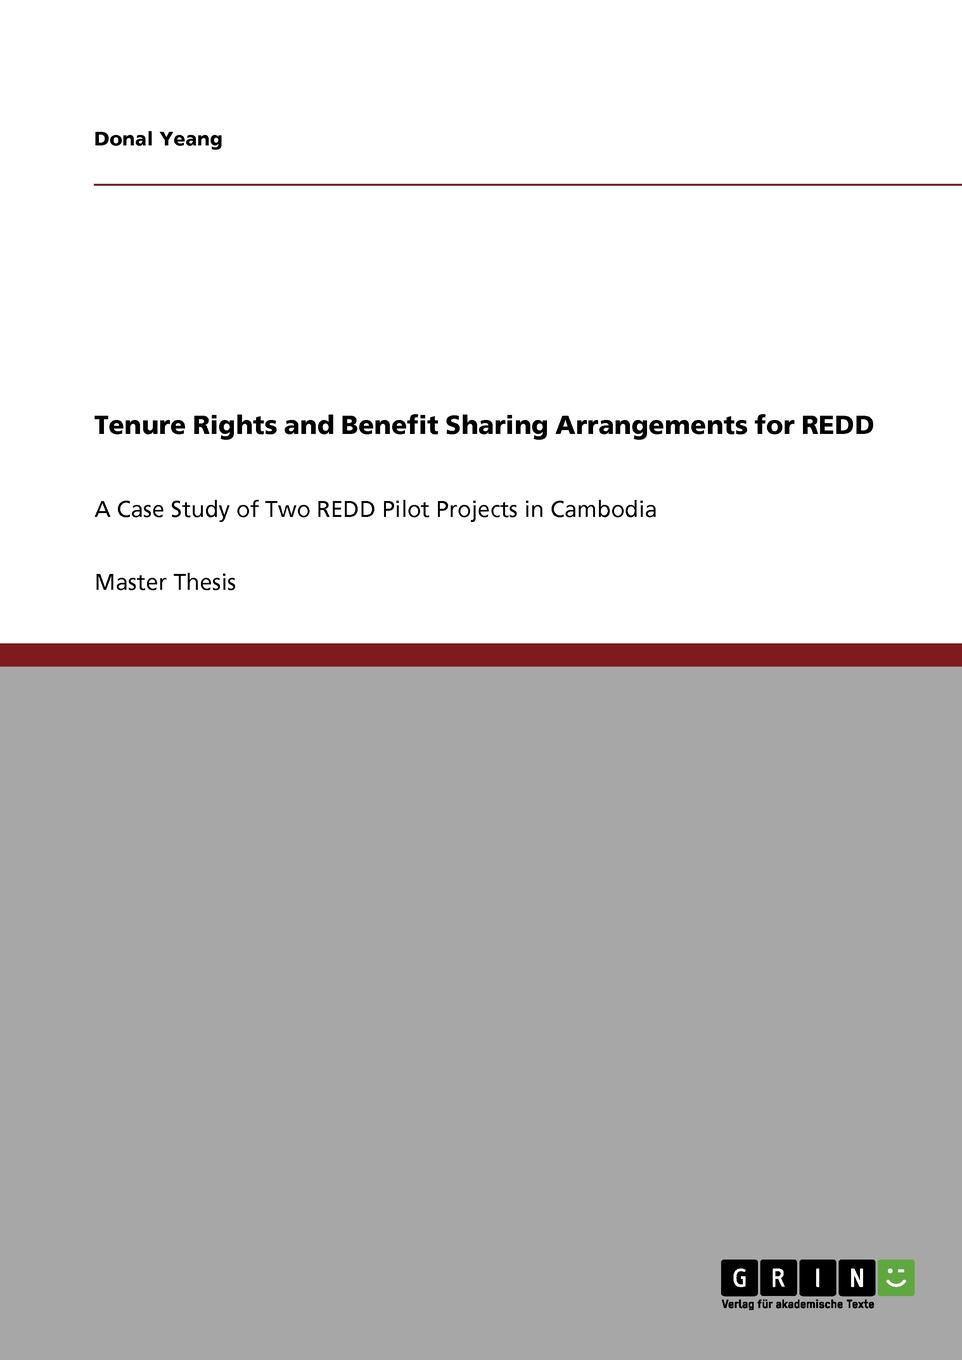 Donal Yeang Tenure Rights and Benefit Sharing Arrangements for REDD forest resource use by adjacent communities of mau forest complex